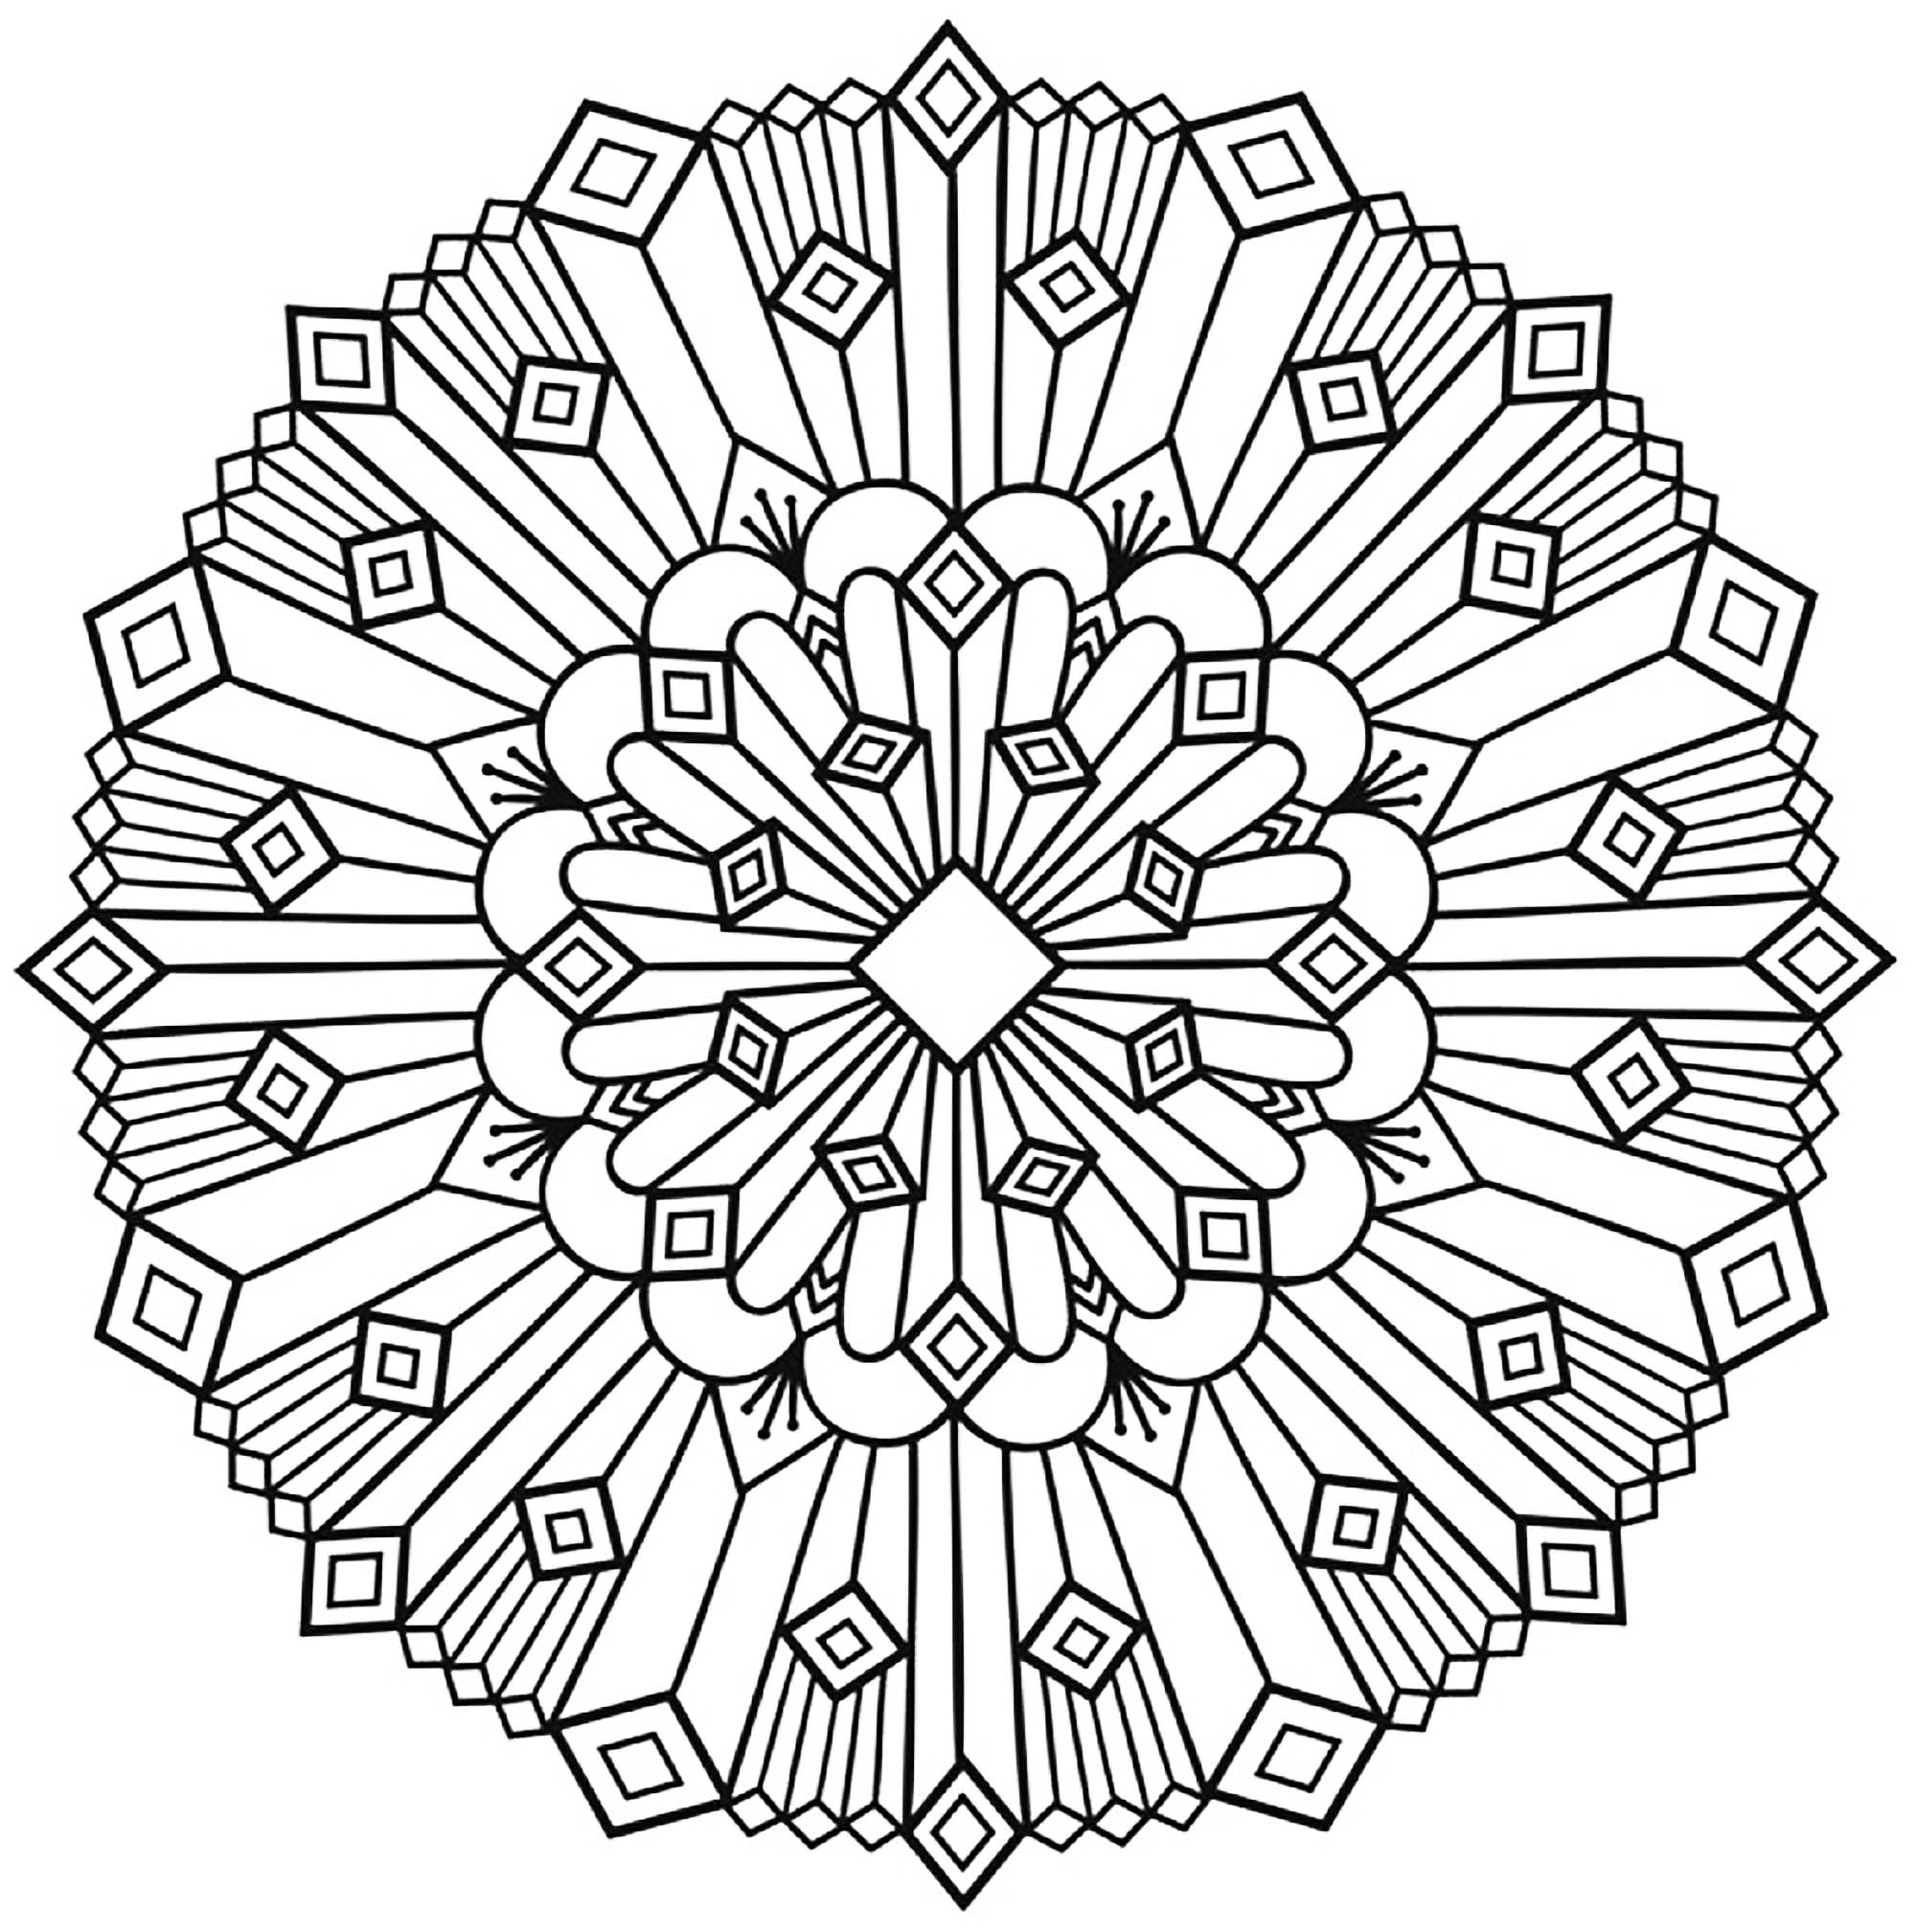 mandala adult coloring pages mandalas to color for kids mandalas kids coloring pages adult mandala coloring pages